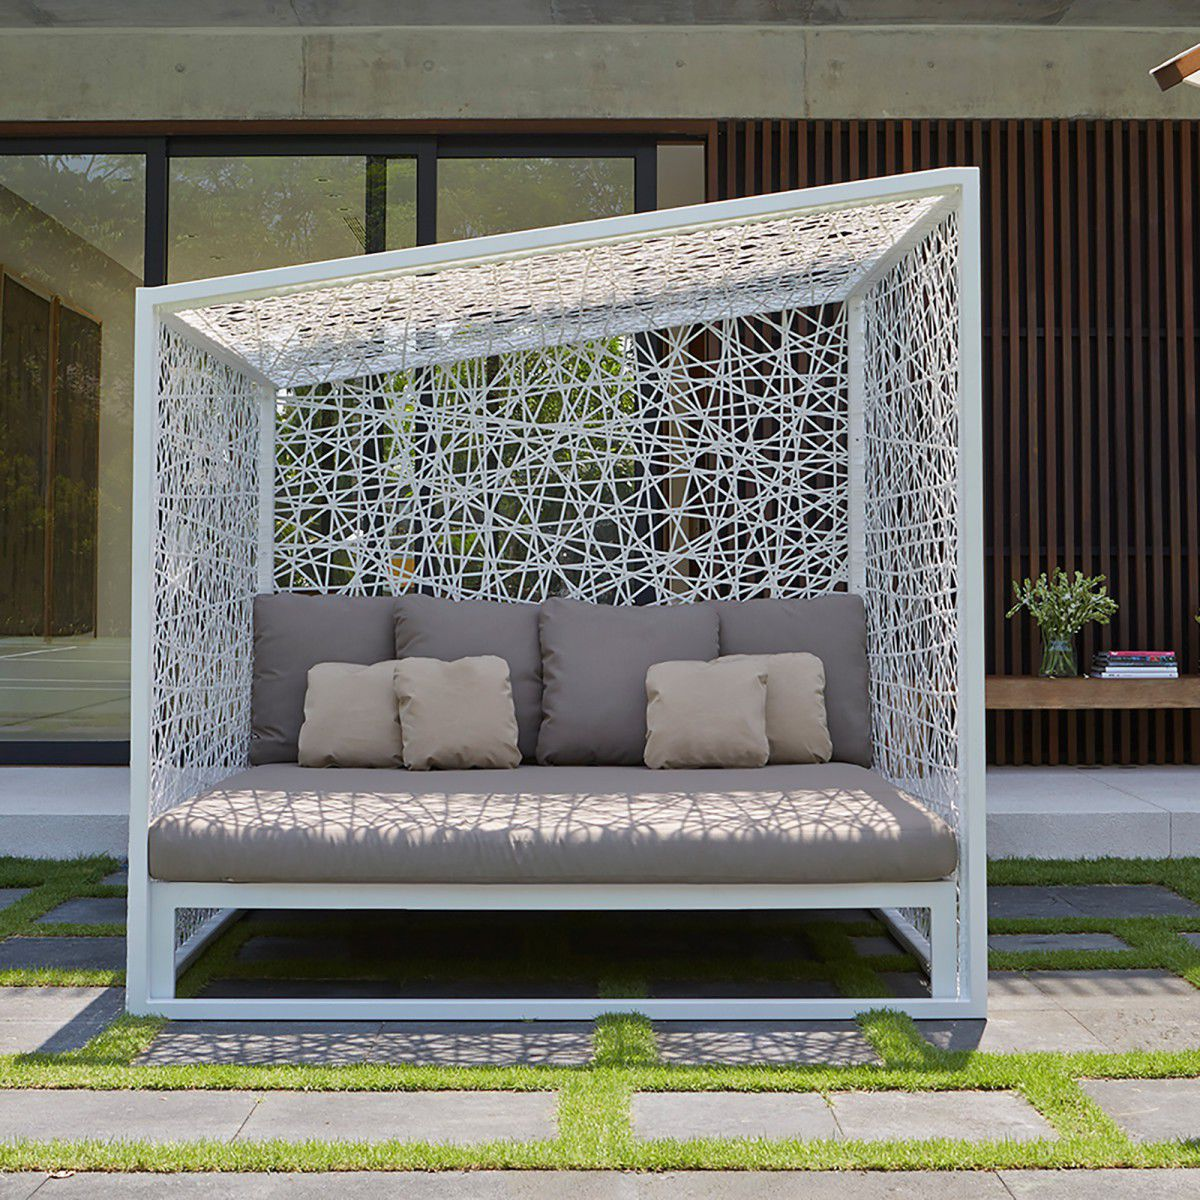 Contemporary daybed / metal / garden / canopy - GEOMETRIC & Contemporary daybed / metal / garden / canopy - GEOMETRIC - SKY ...